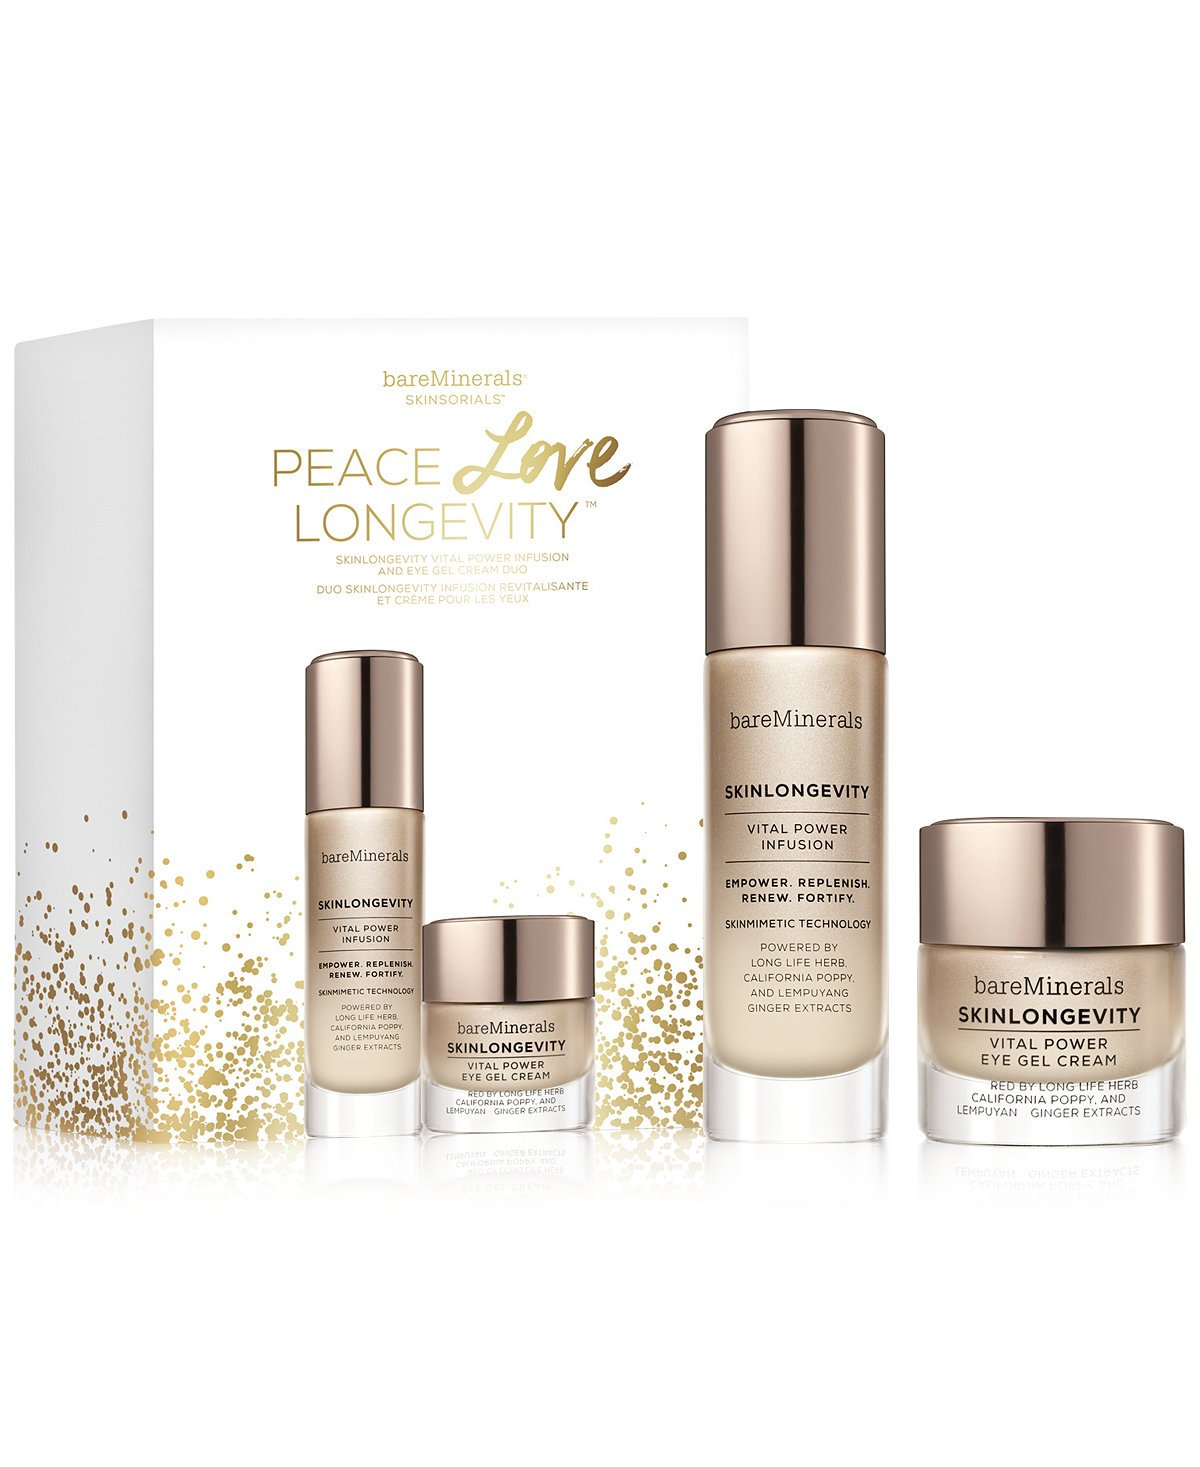 bareMinerals Peace Love Longevity Skinlongevity Outlet SALE and Eye Max 48% OFF Serum Cr